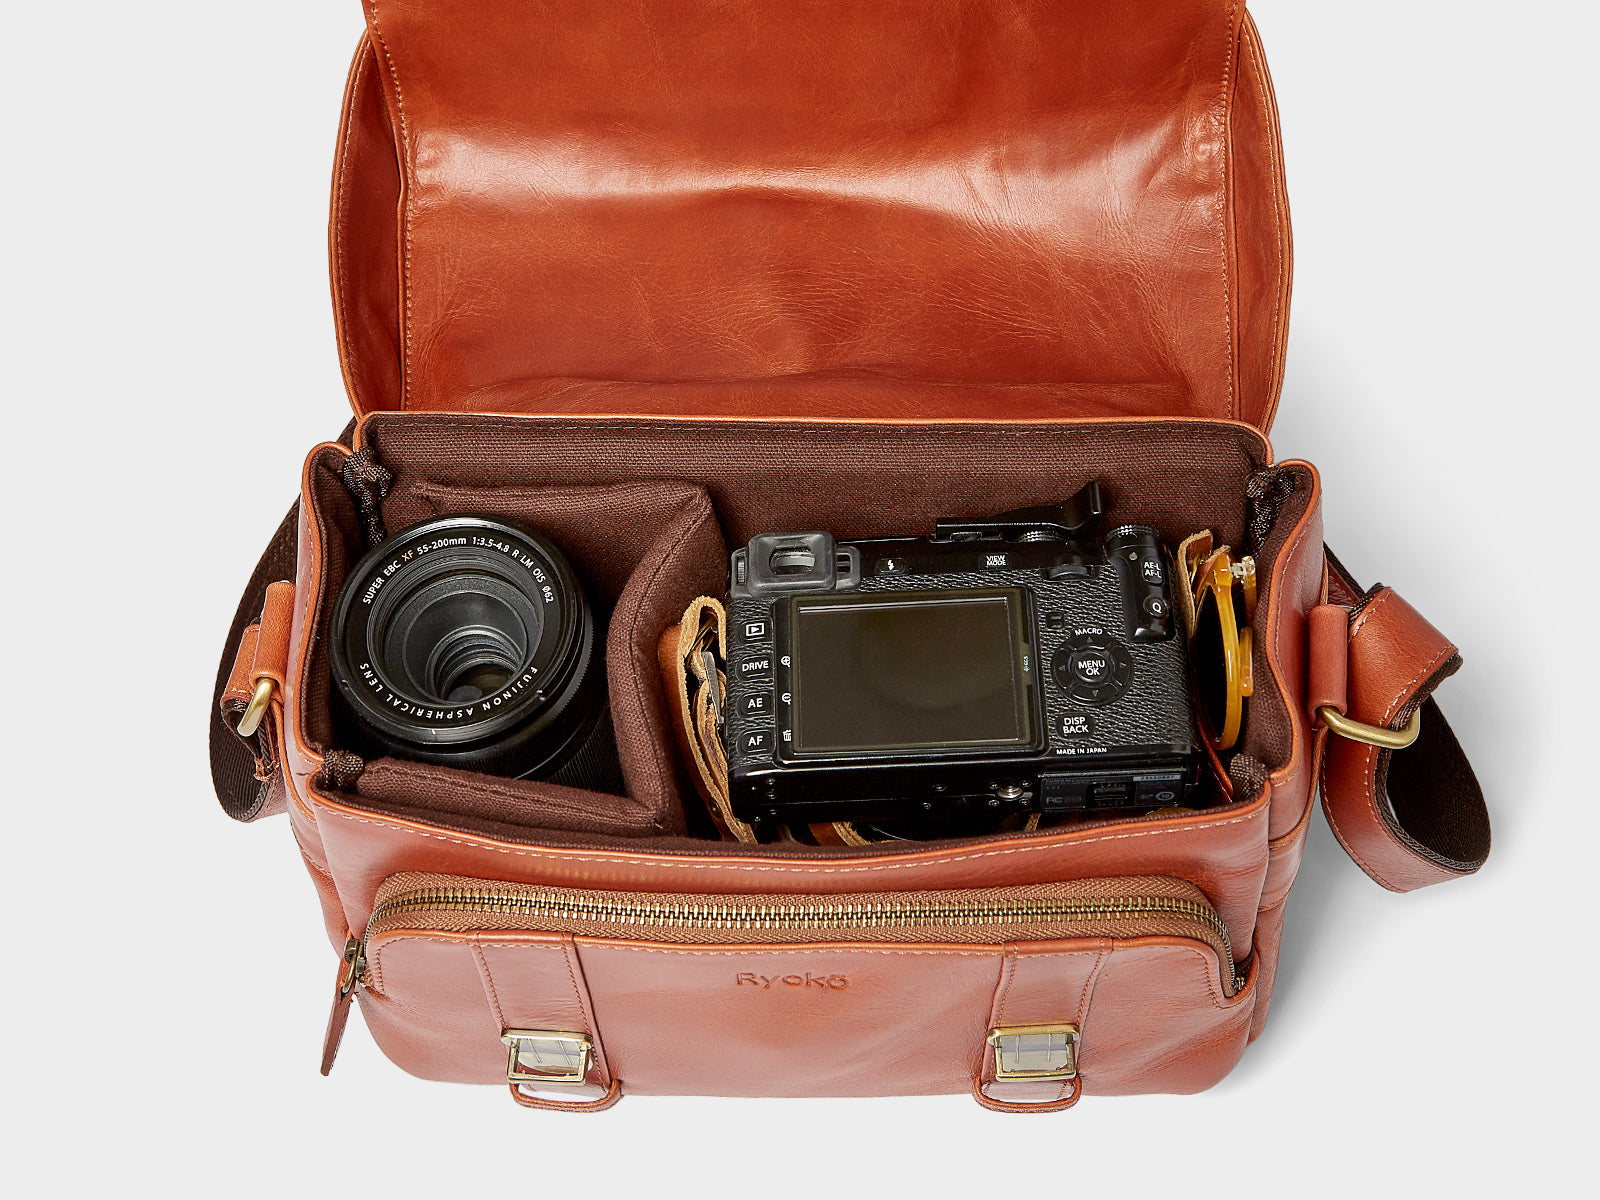 d23fdd310762 Hand Stitched, · RiO Camera Bag, Travel/Camera Bags by Ryoko Bags Dubai.